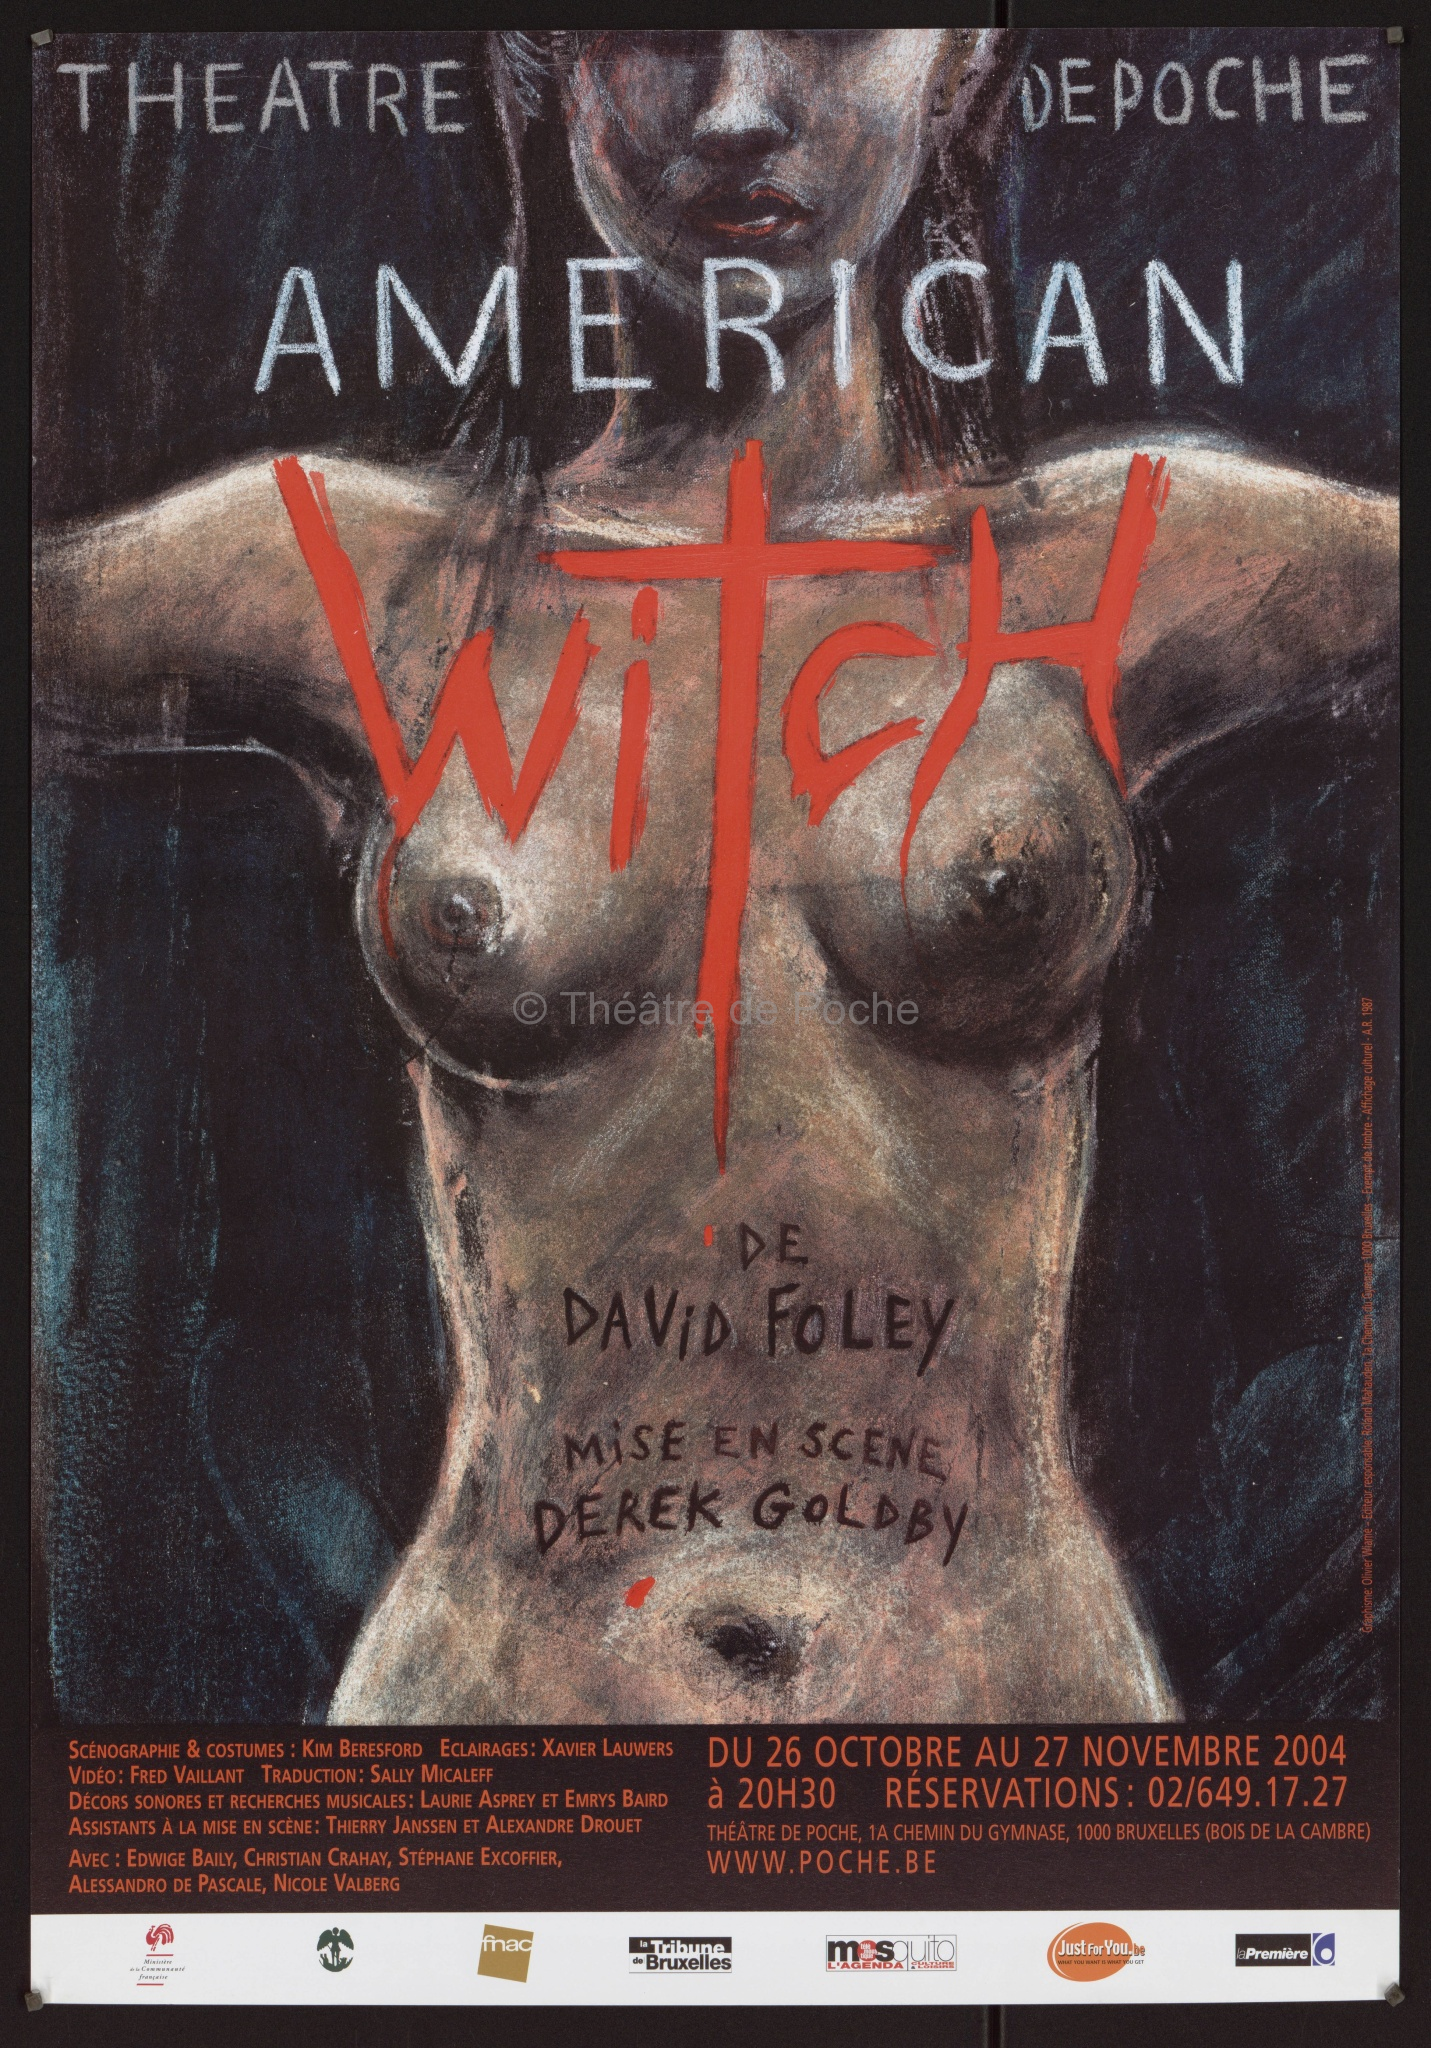 American witch - Affiche